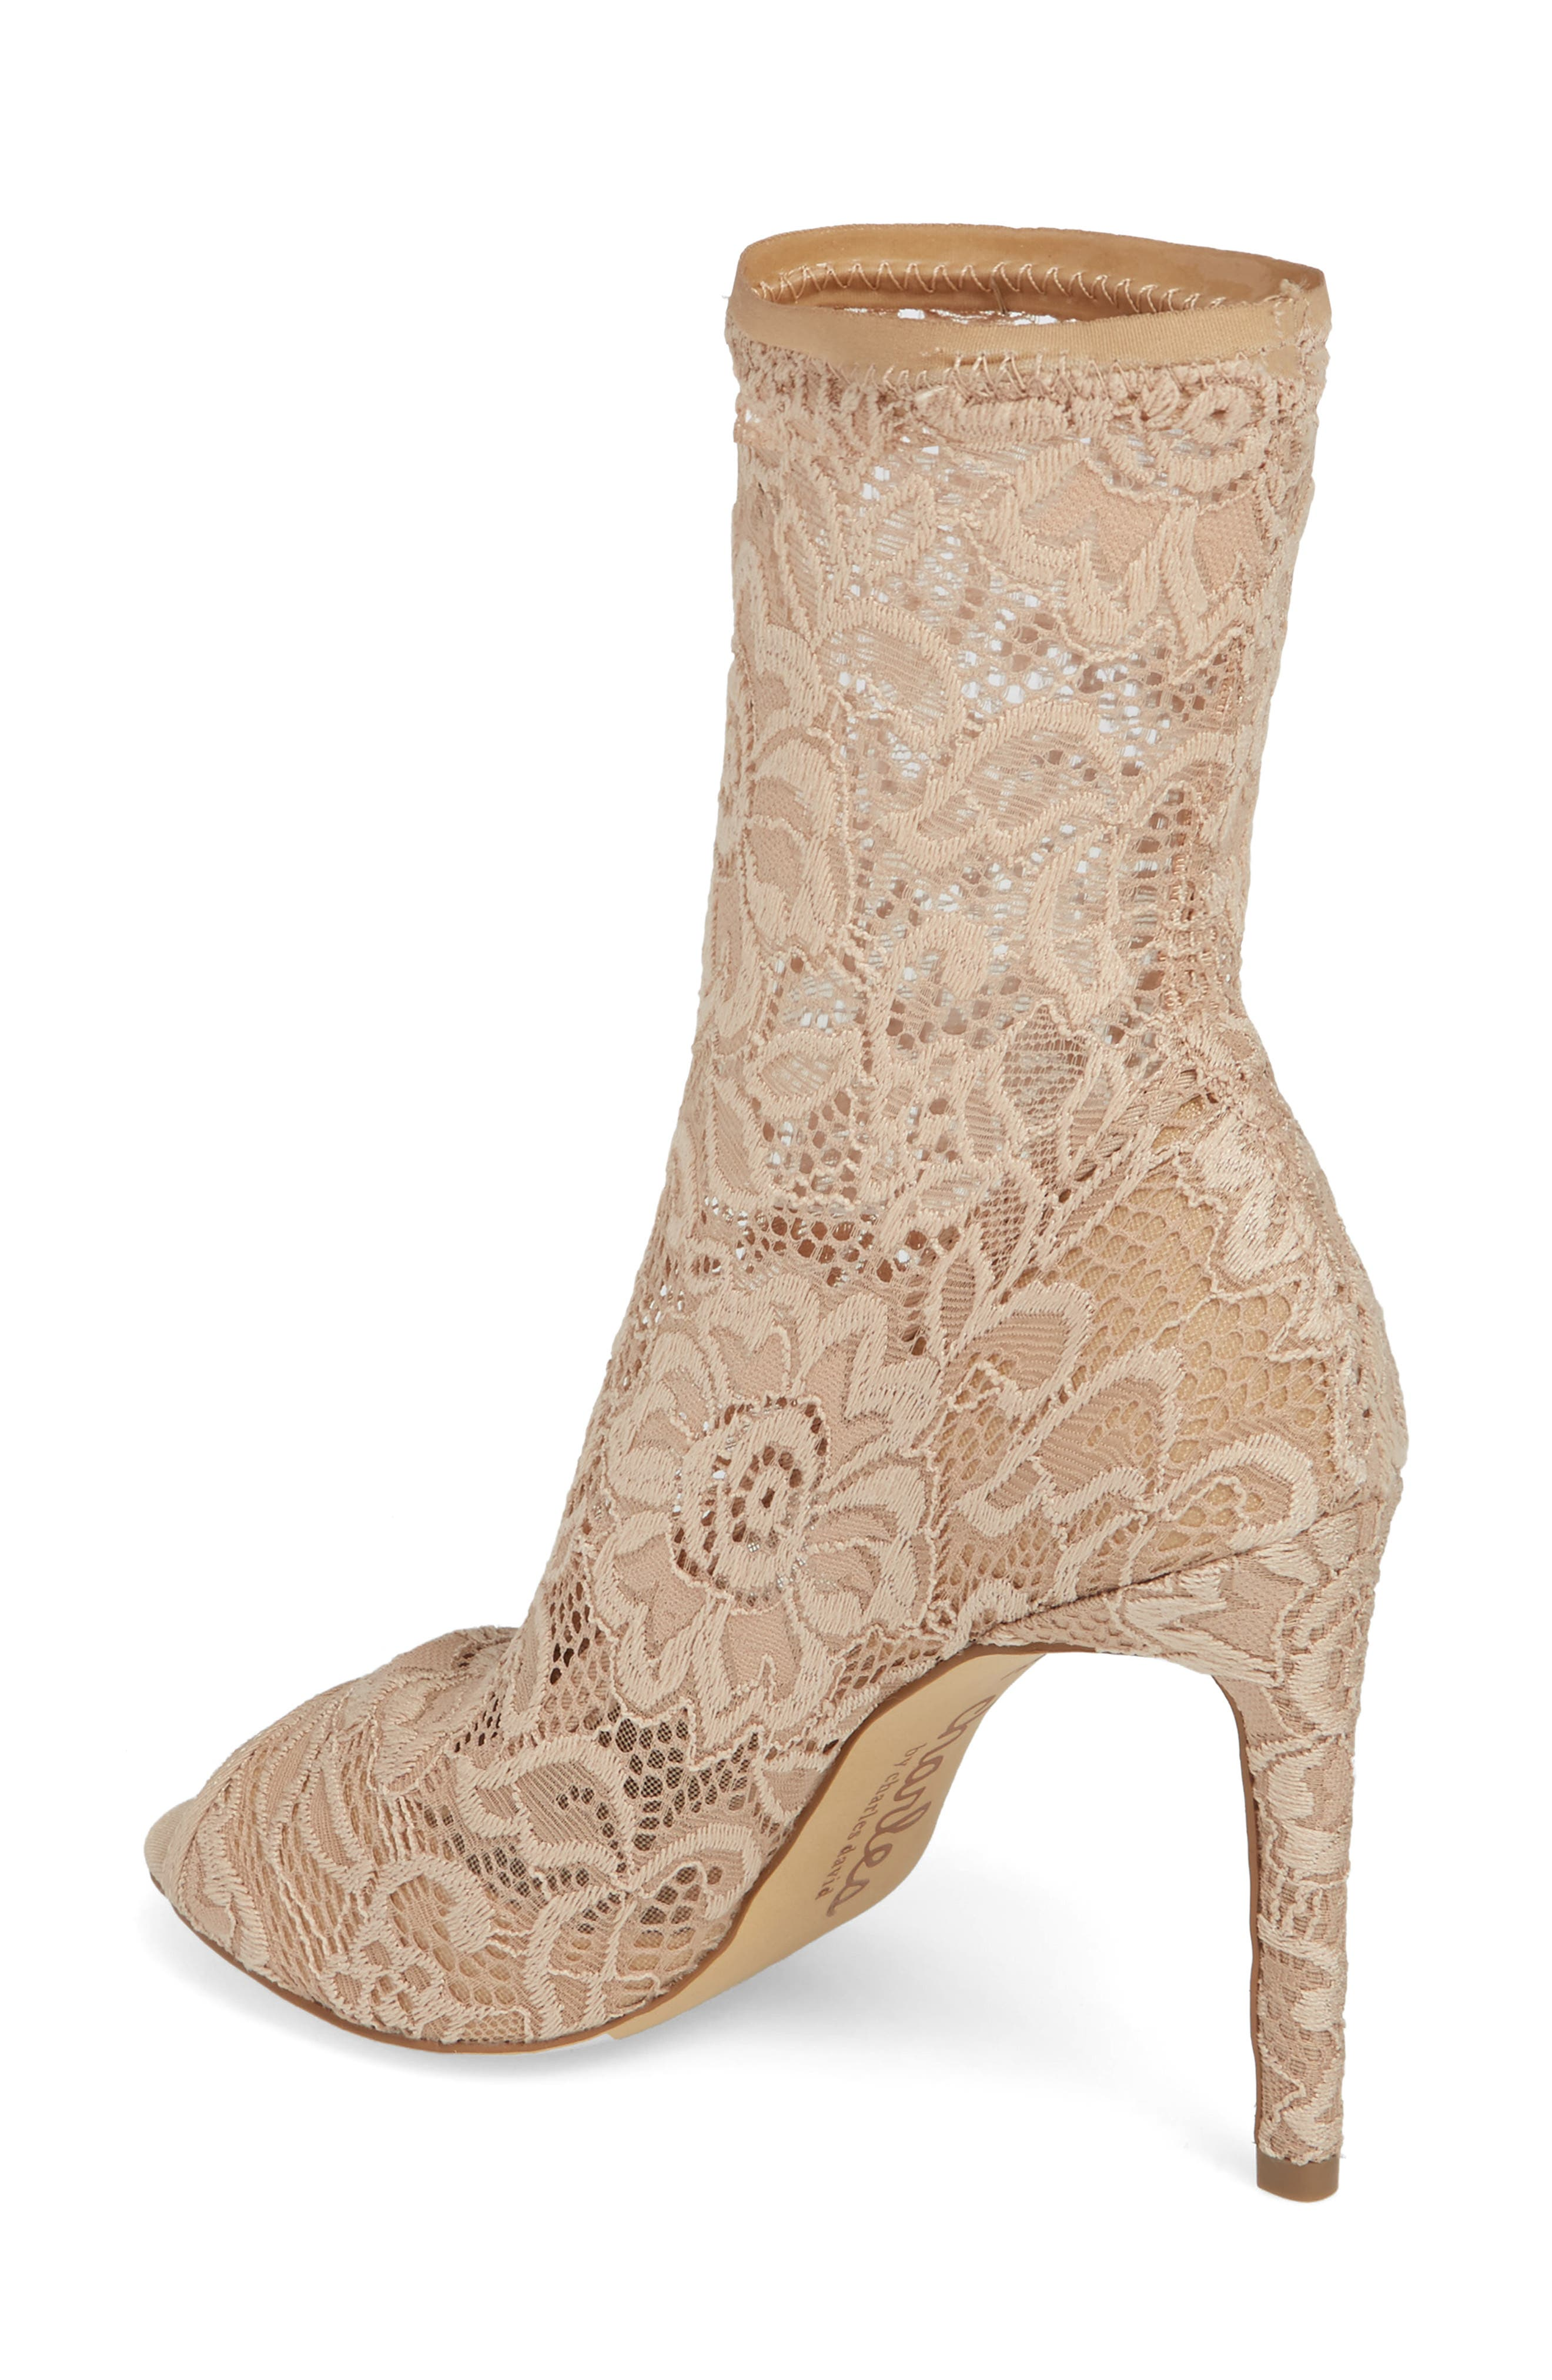 Imaginary Lace Sock Bootie,                             Alternate thumbnail 2, color,                             NUDE FABRIC